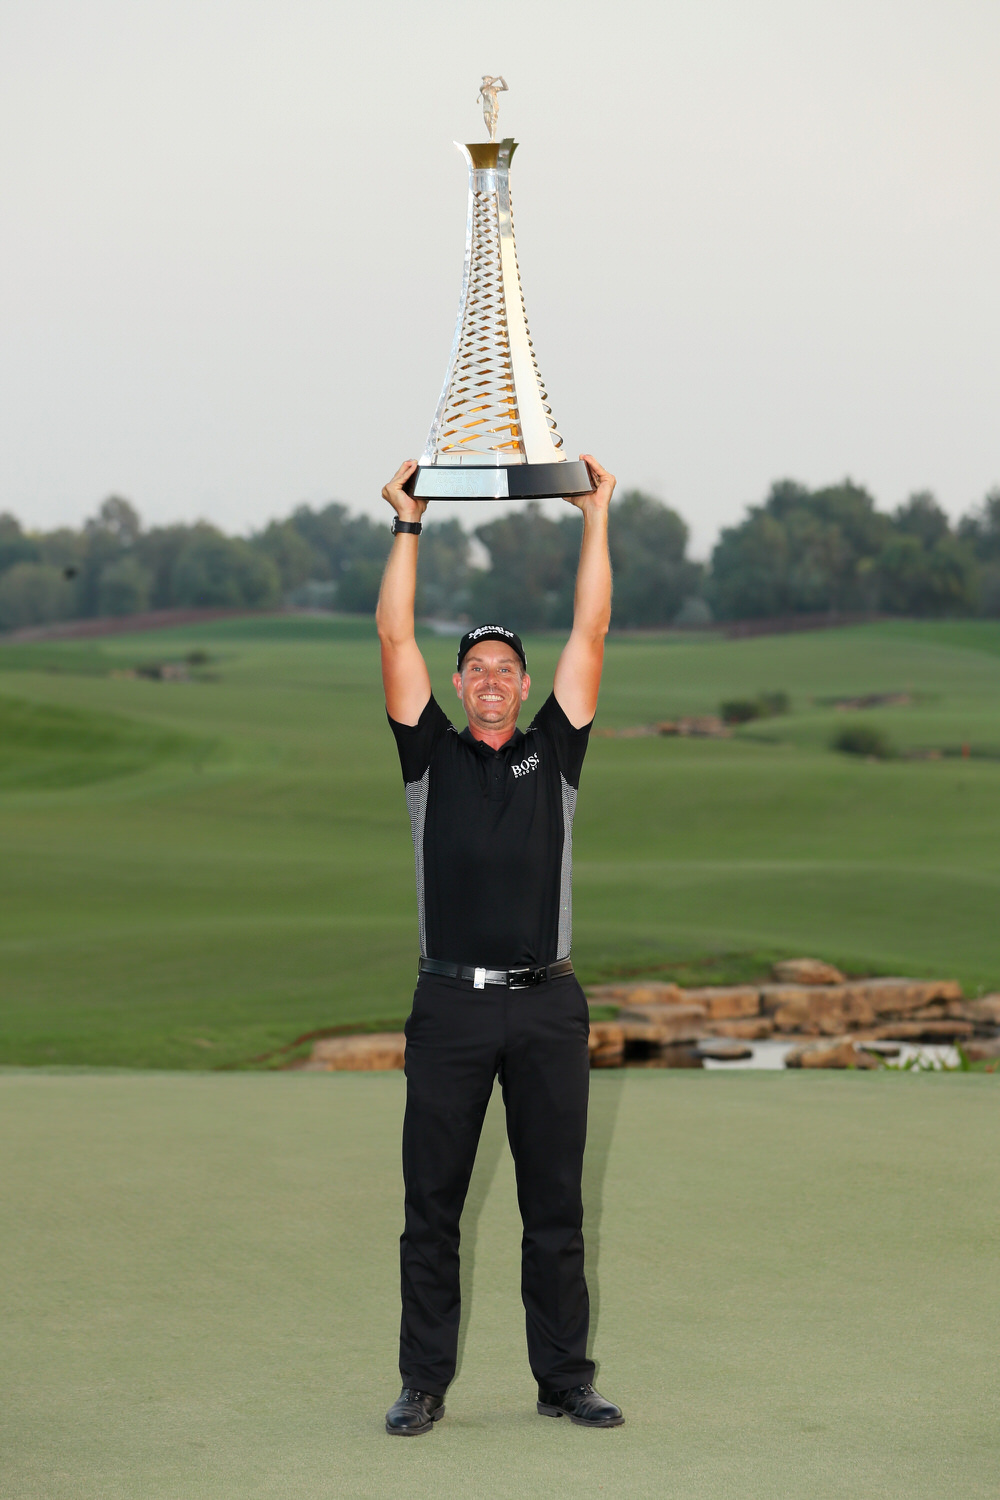 DUBAI, UNITED ARAB EMIRATES - NOVEMBER 20:  Henrik Stenson of Sweden poses with the Race to Dubai trophy during day four of the DP World Tour Championship at Jumeirah Golf Estates on November 20, 2016 in Dubai, United Arab Emirates.  (Photo by Andrew Redington/Getty Images)